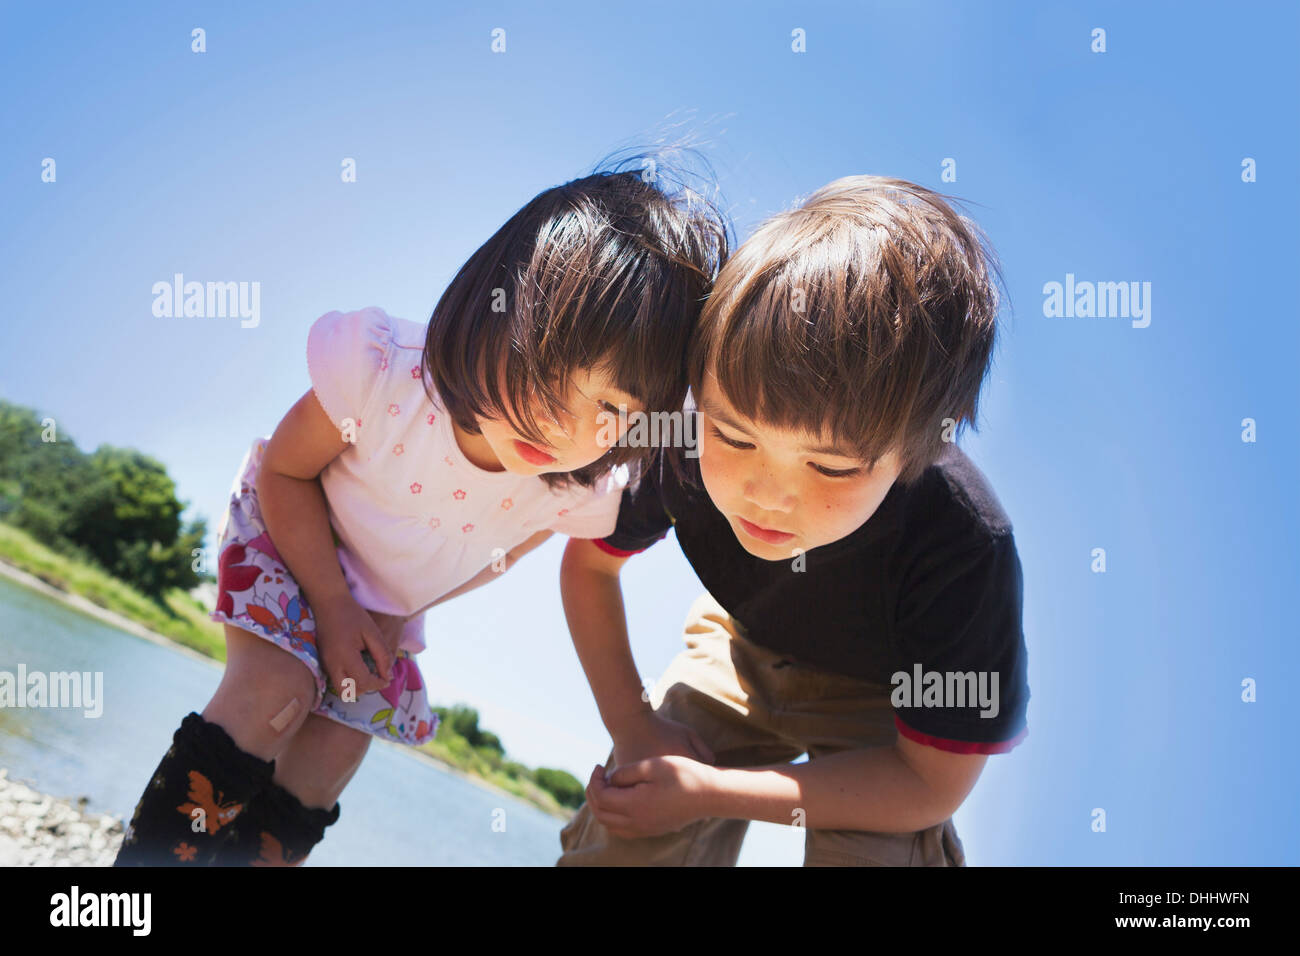 Boy and girl looking down at something - Stock Image